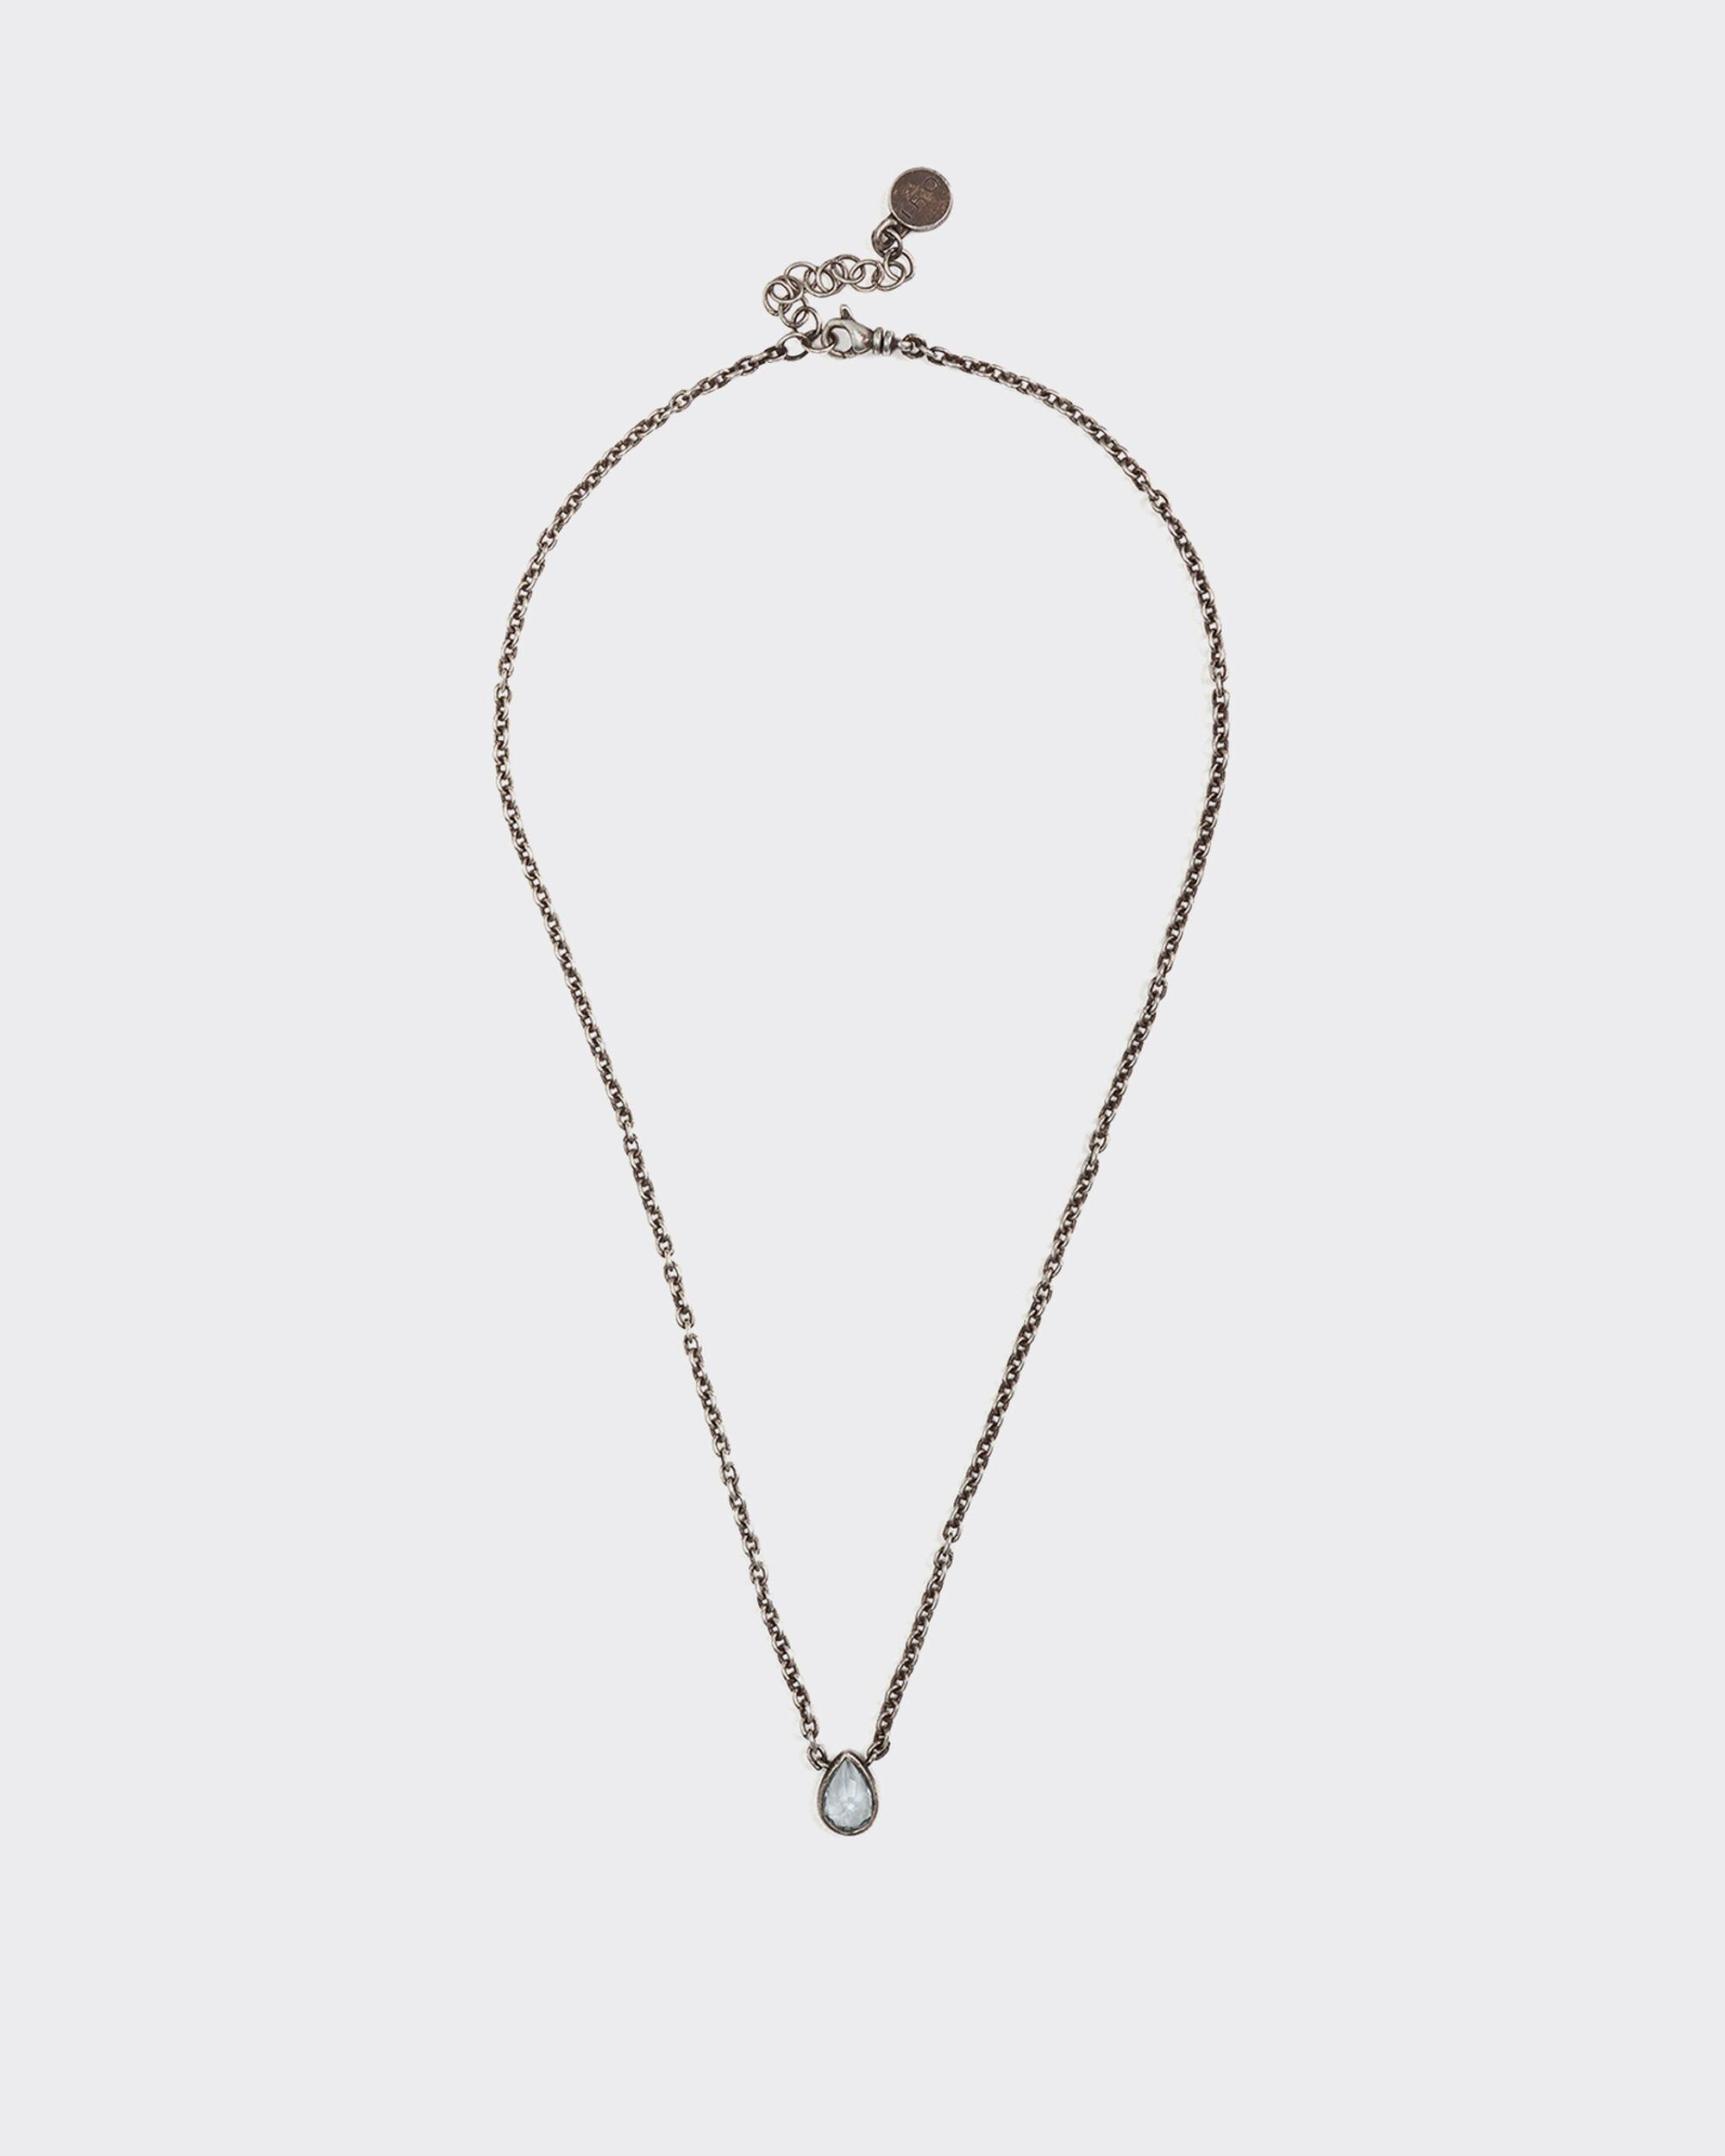 PRASE SILVER AND AQUAMARINE BEAD NECKLACE